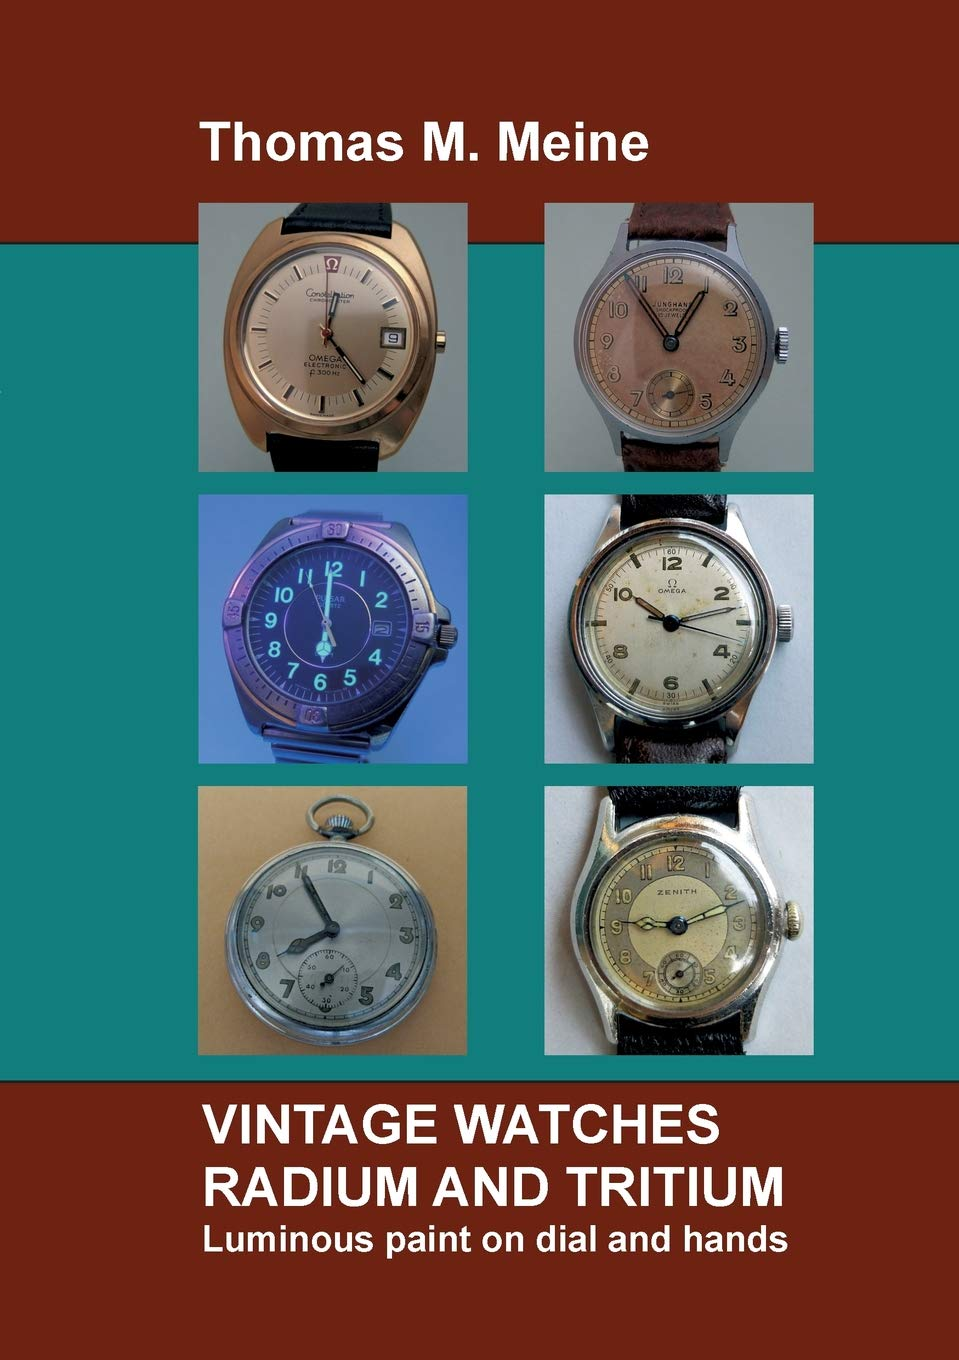 Vintage Watches - Radium and Tritium: Luminous paint on dial and hands